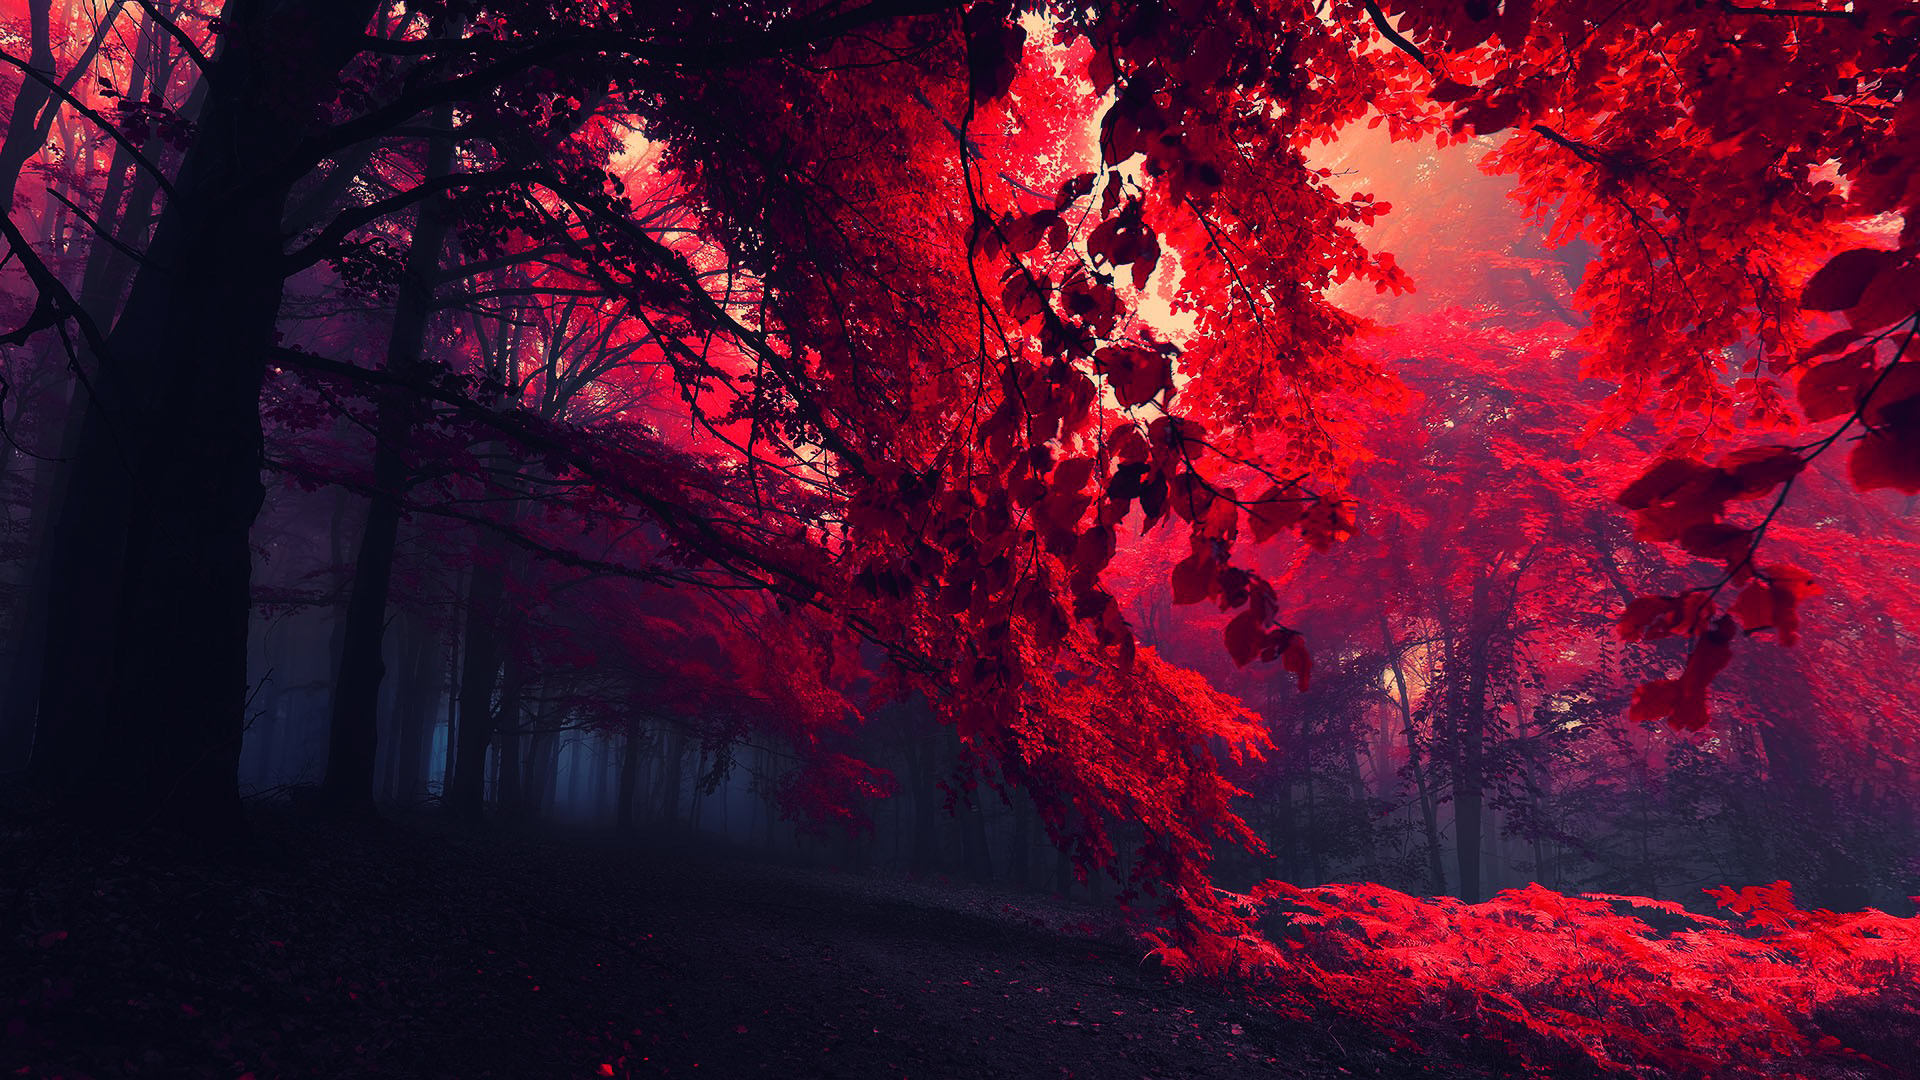 screensaver Red Leaves Beautiful Fall Landscapes HD Wallpapers 1920x1080